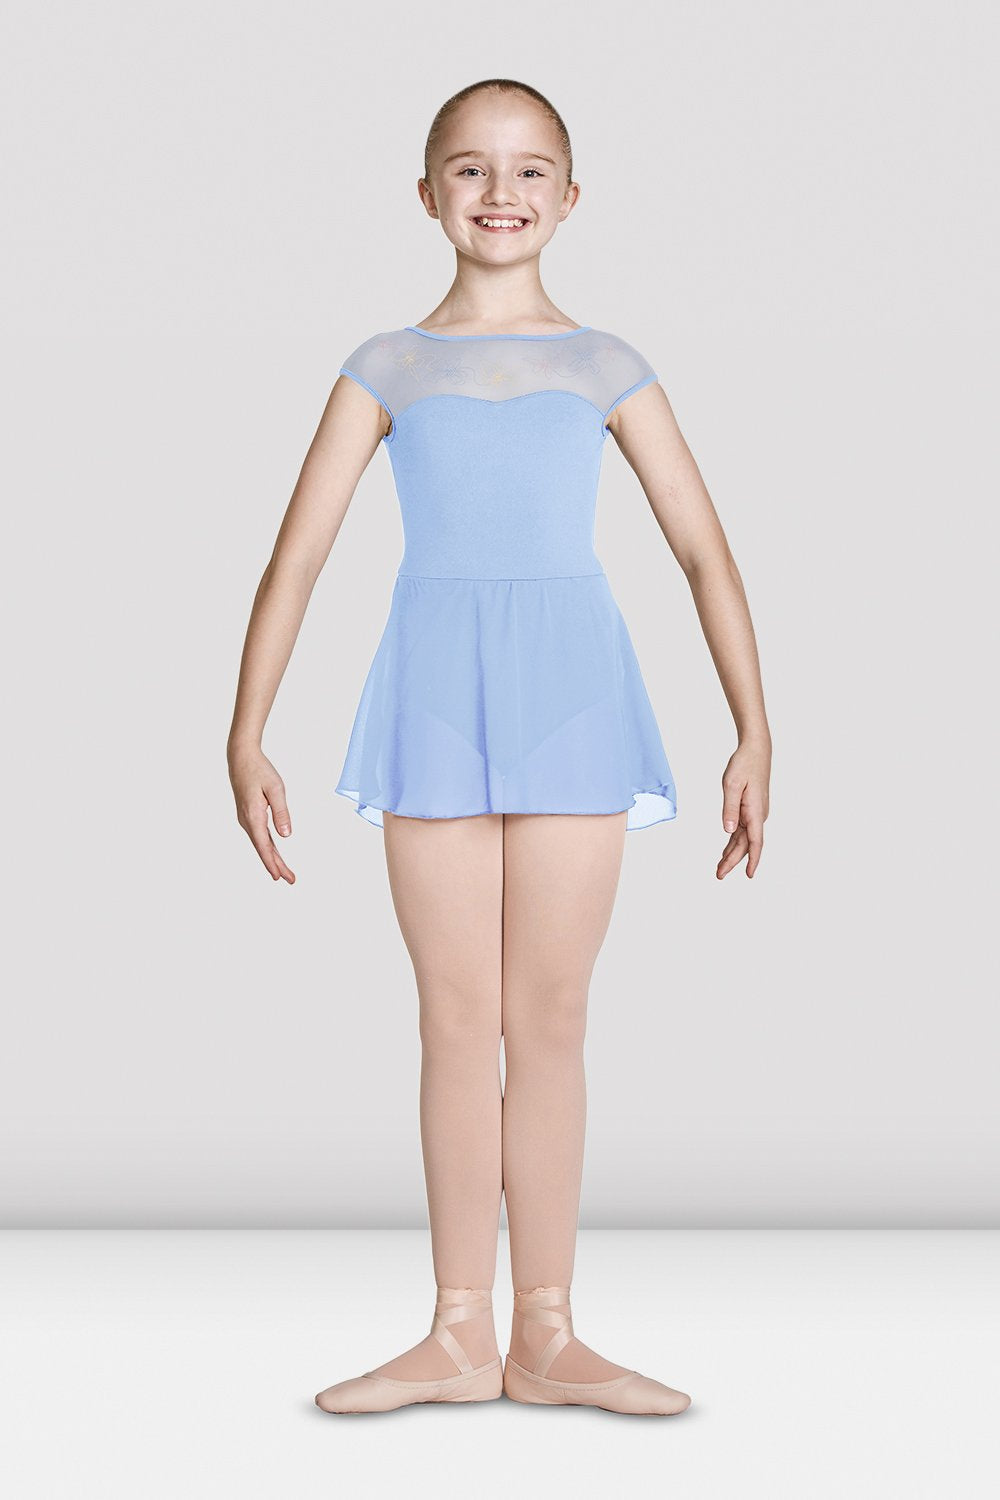 Blue Bloch Girls Mesh Bodice Cap Sleeve Skirted Leotard on female model feet in first position with arms in demi bras